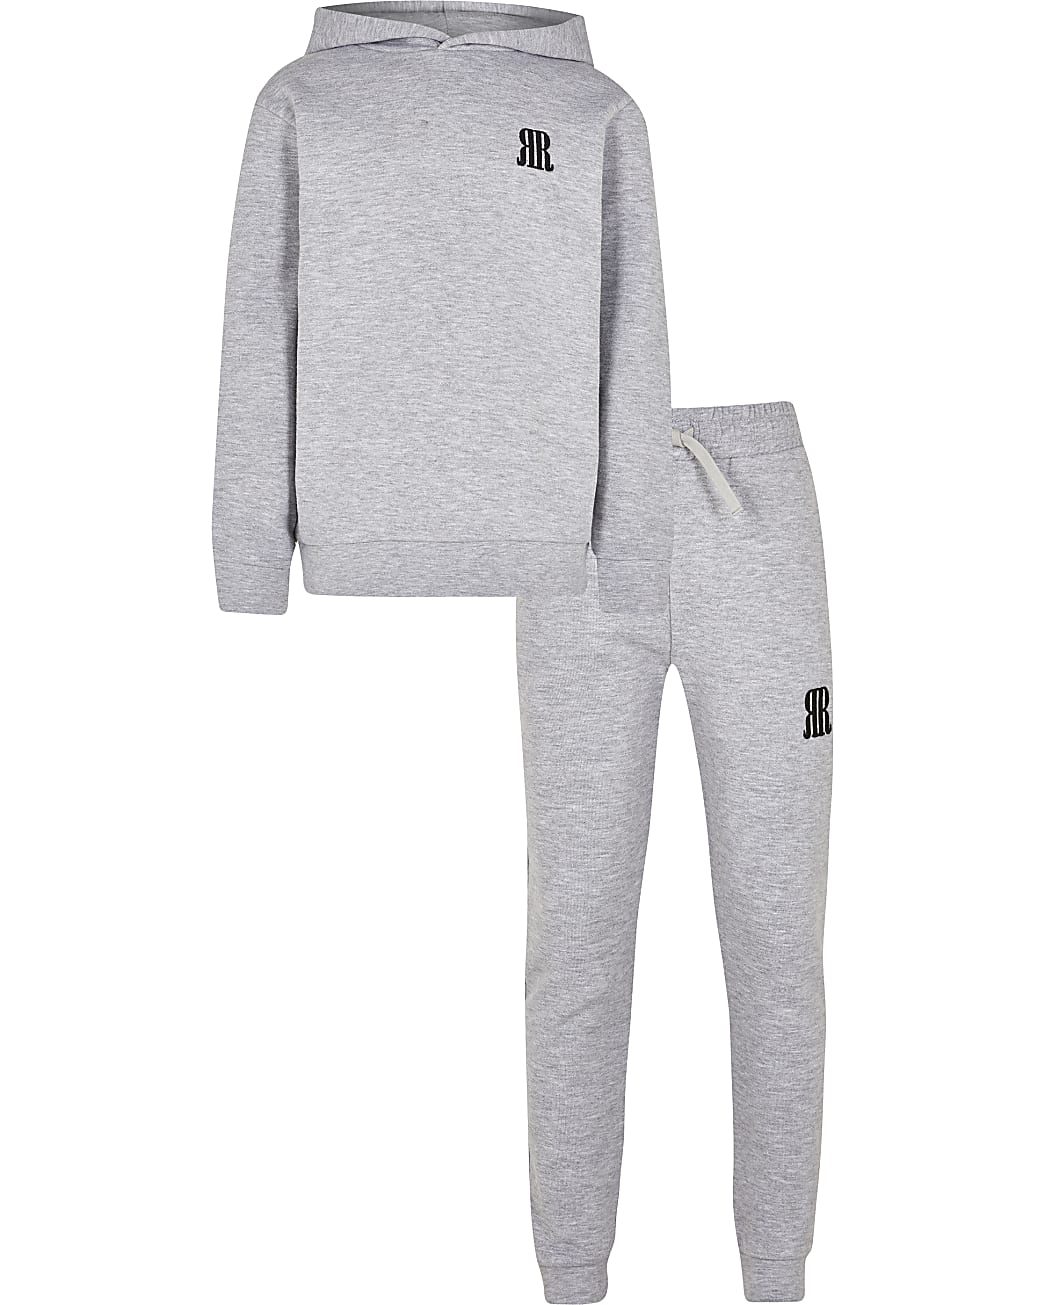 Boys grey RR hoodie and jogger outfit